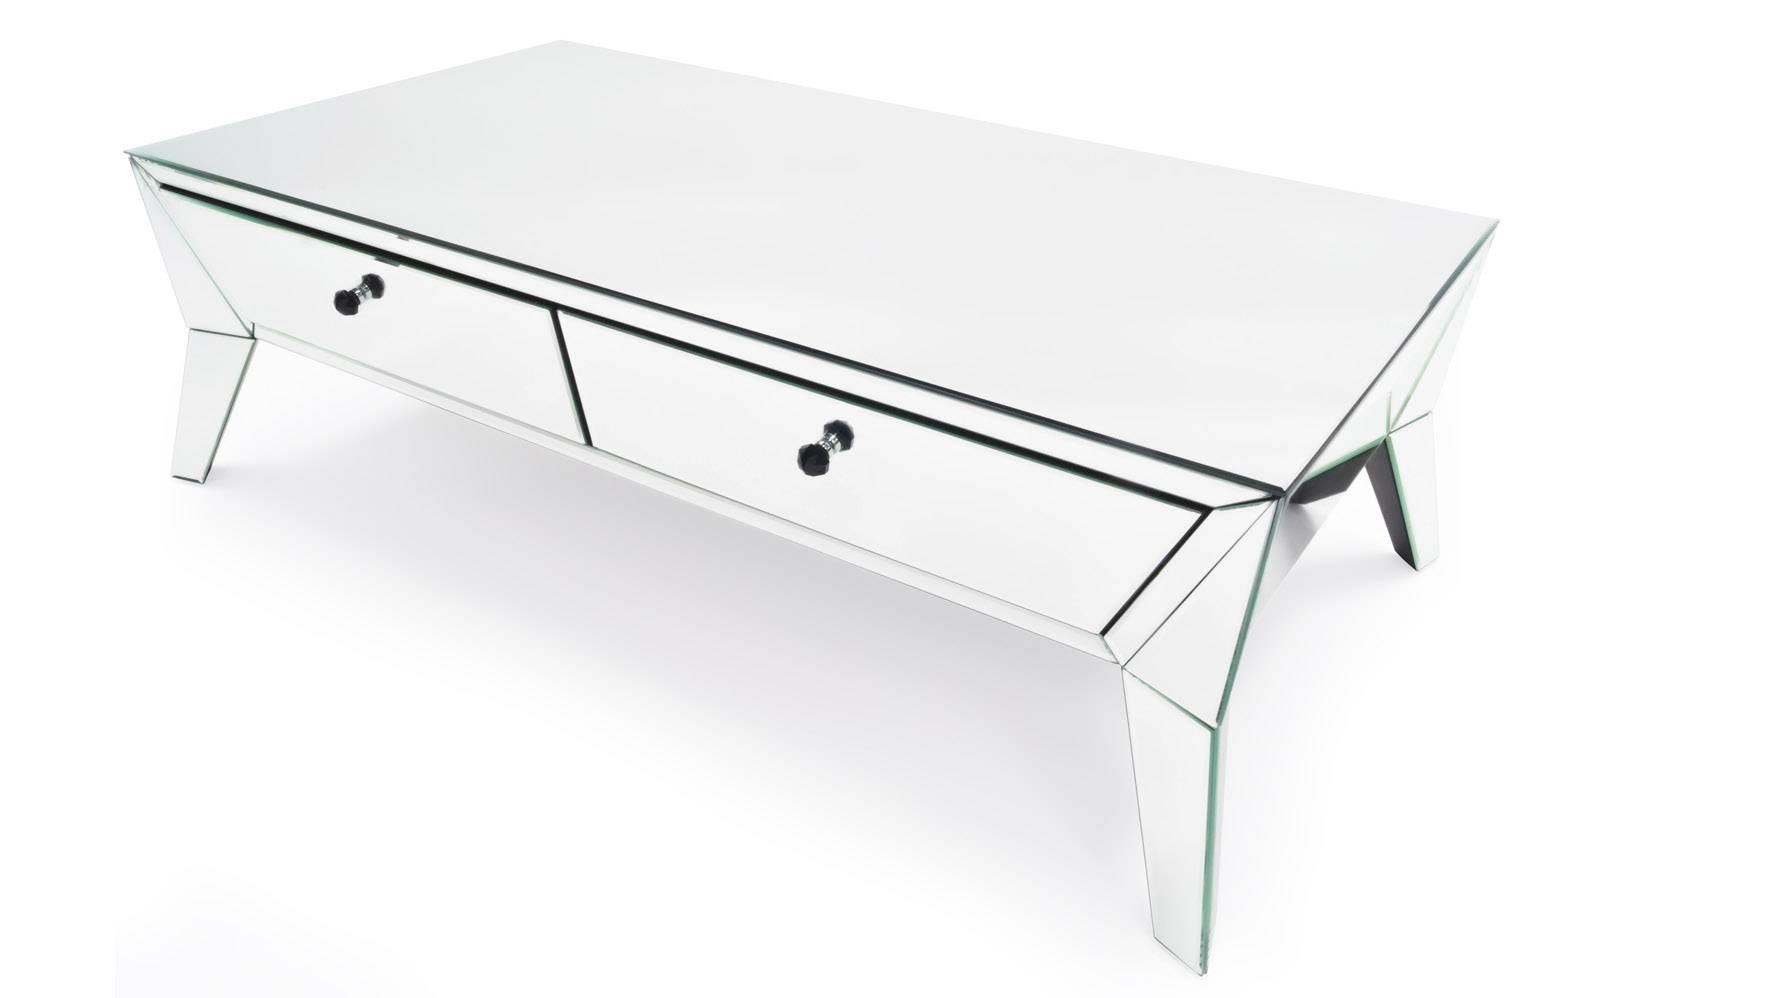 Lave Mirrored Glass Coffee Table | Zuri Furniture with regard to Mirrored Coffee Tables (Image 17 of 30)